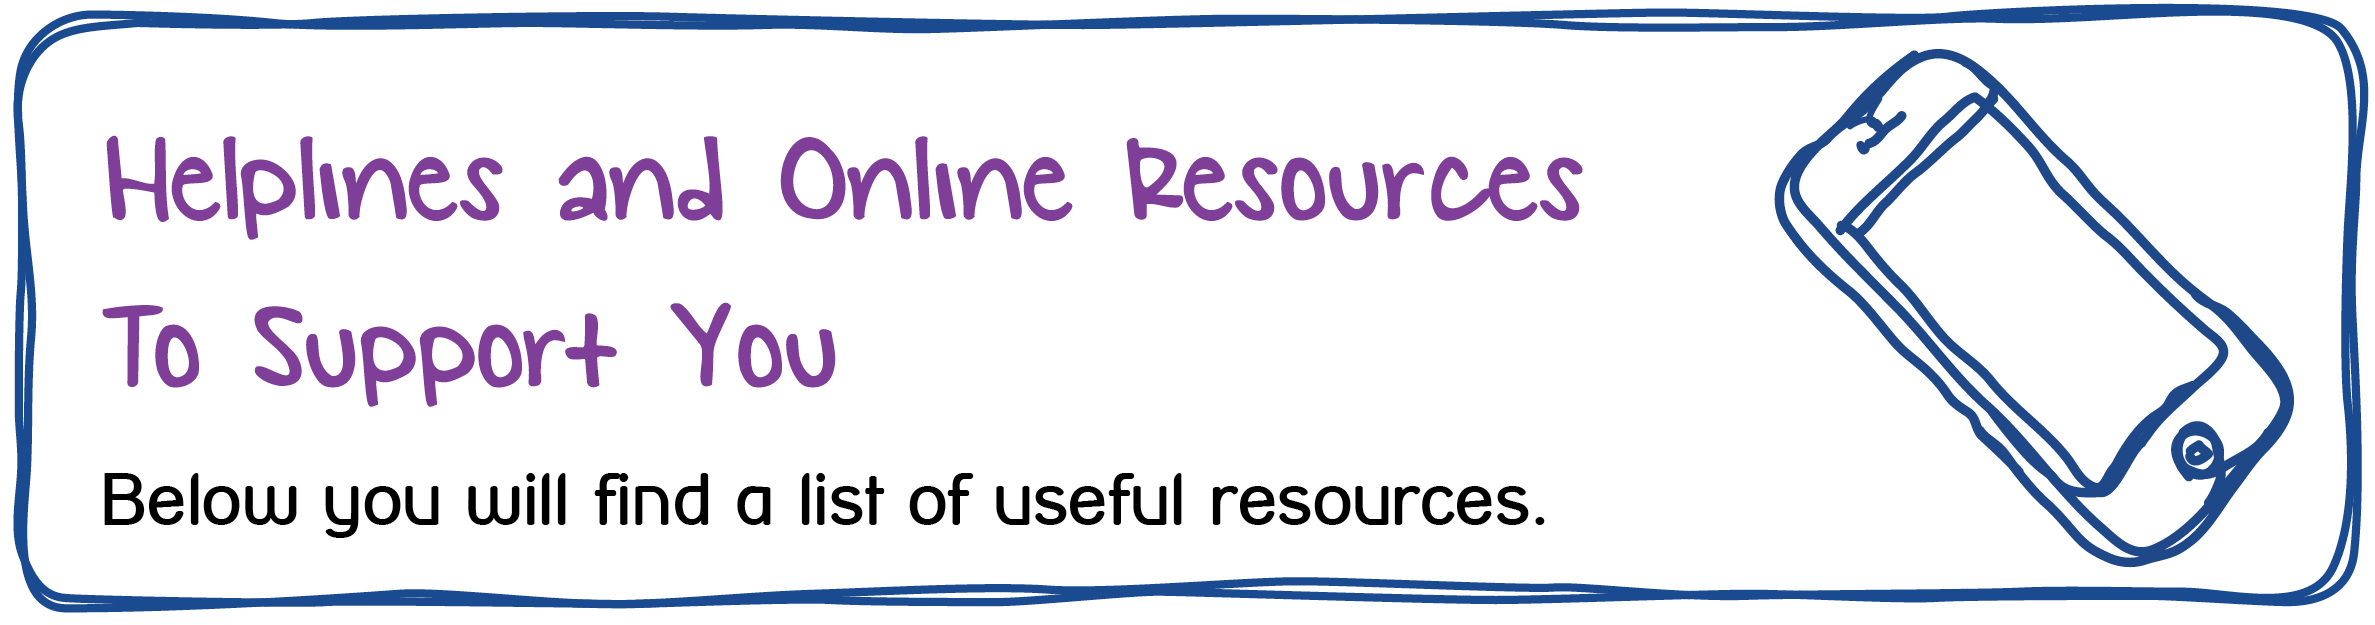 Helplines and Online Resources To Support You. Below you will find a list of useful resources.